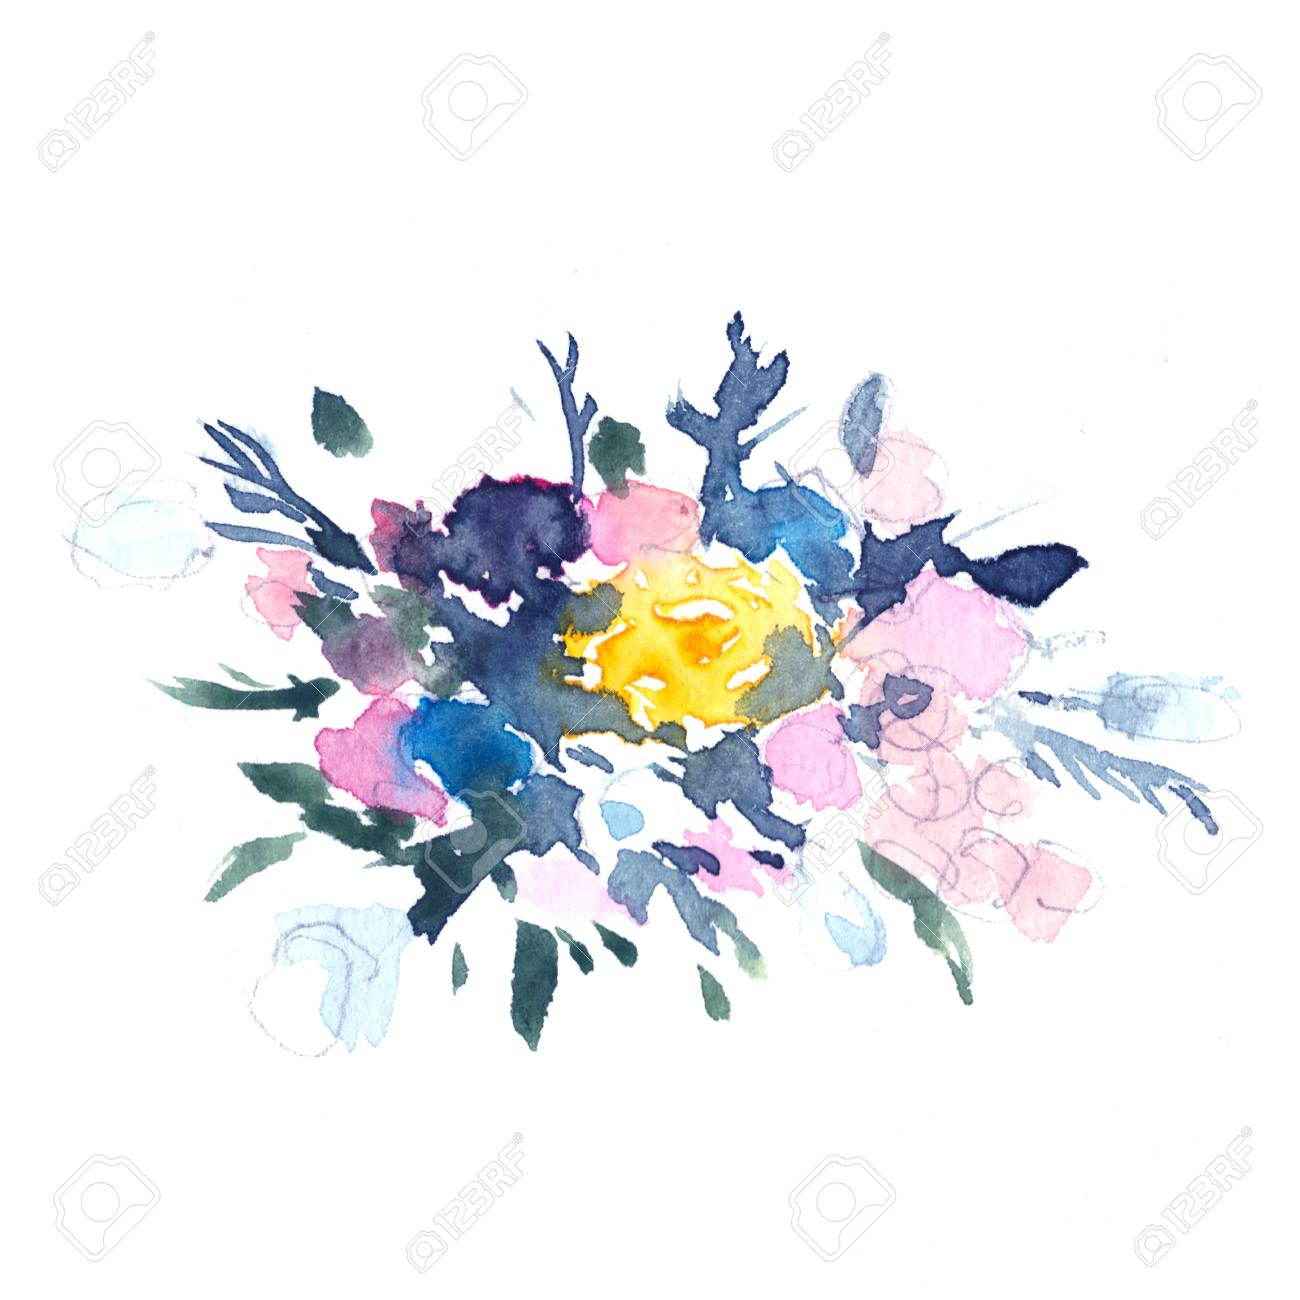 Abstract Watercolor Floral Illustration In A La Prima Style Roses